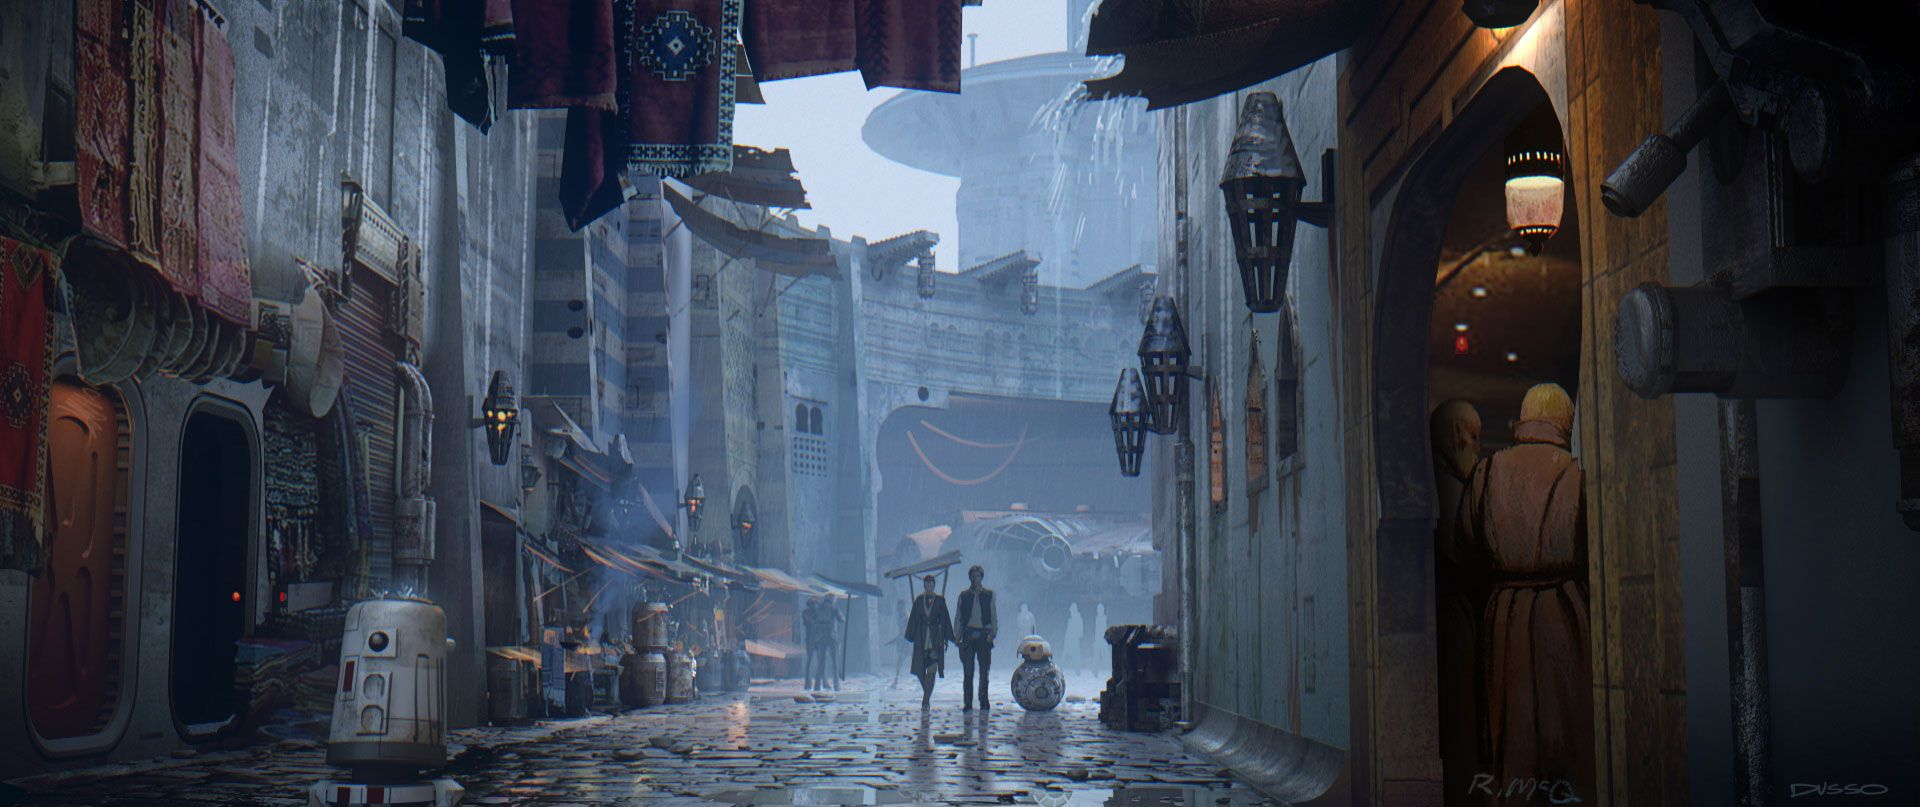 Star Wars: The Force Awakens Concept Art Images Revealed ...